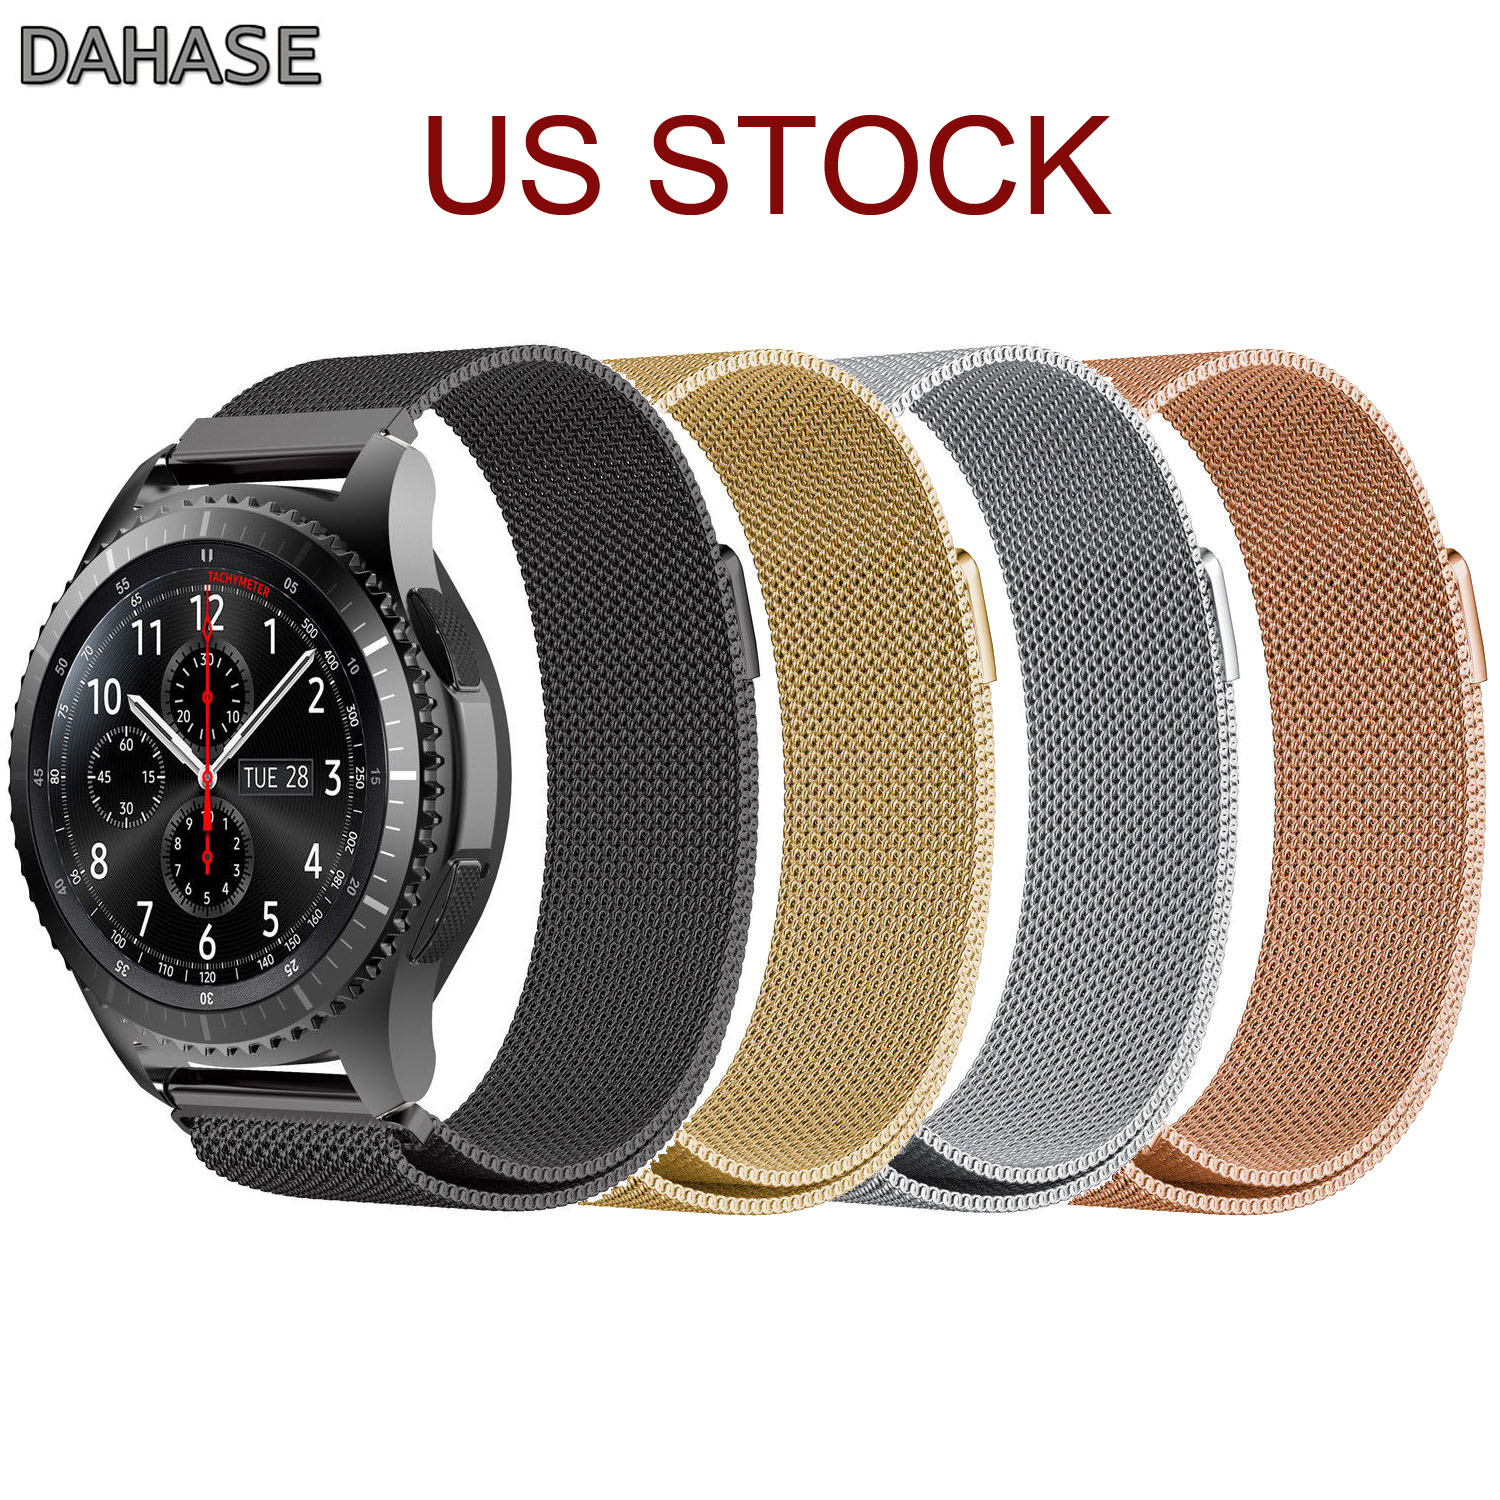 все цены на Magnetic Closure Bracelet for Gear S3 Classic Milanese Loop Strap for Samsung Gear S3 Frontier Stainless Steel Watch Band 22mm онлайн